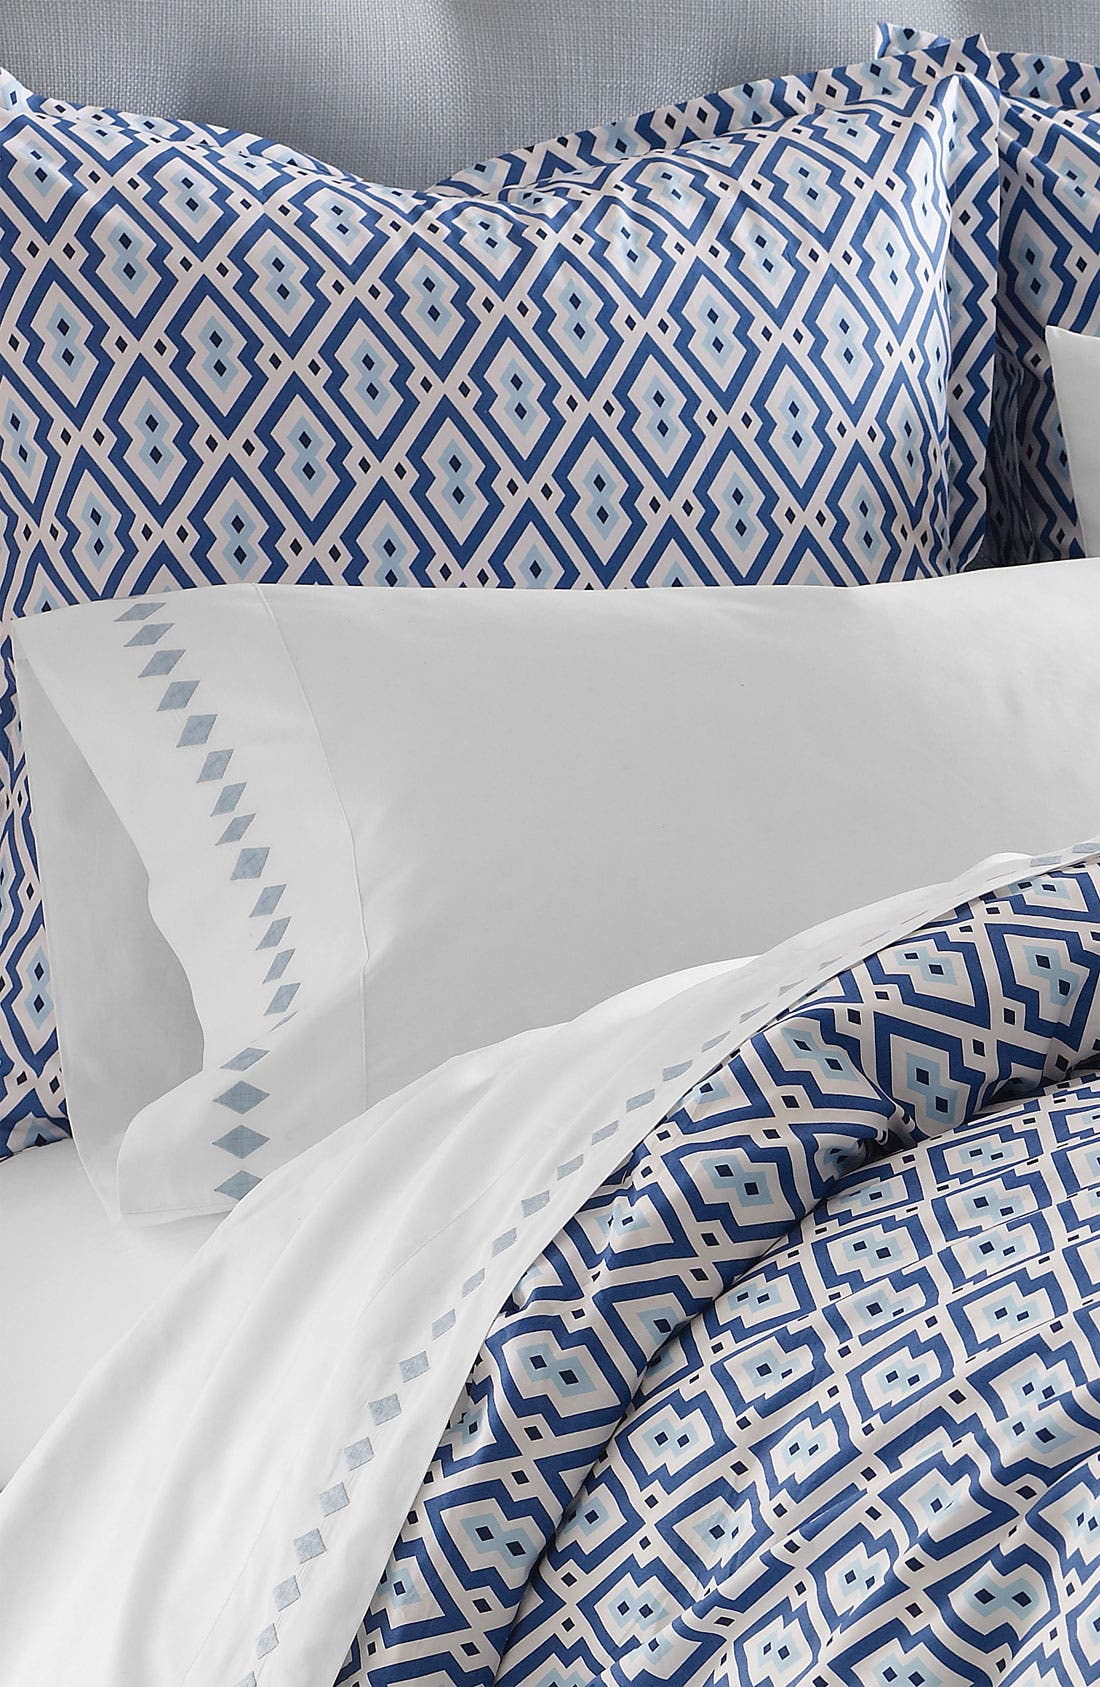 Main Image - Jonathan Adler 400 Thread Count Embroidered Pillowcase